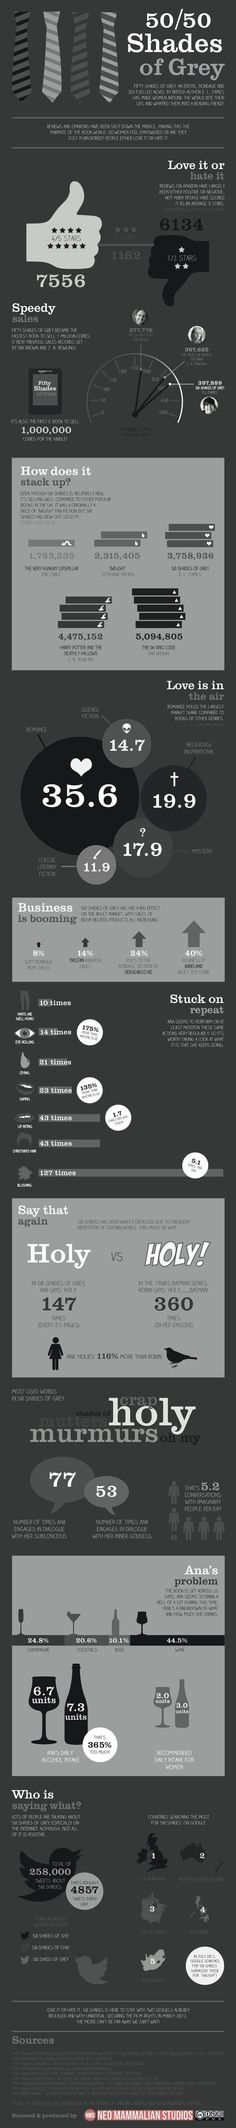 50 Shades of Grey #Infographic